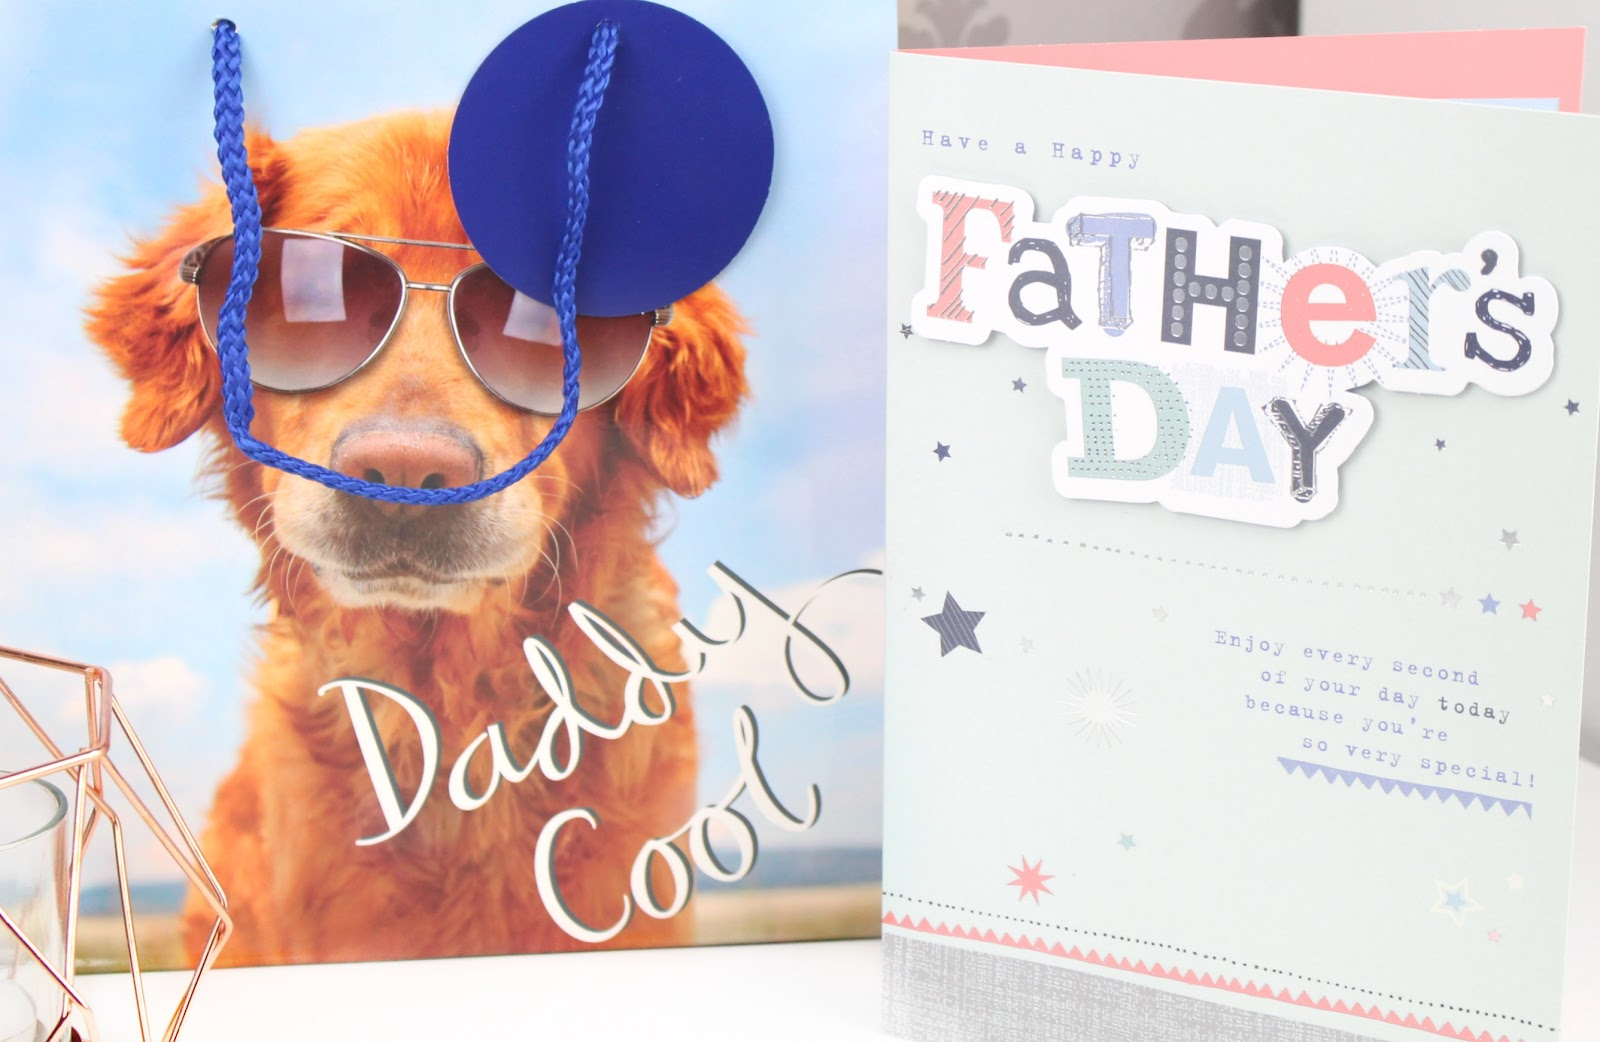 Fathers Day Gift Guide With Debenhams Sophia Meola A Beauty